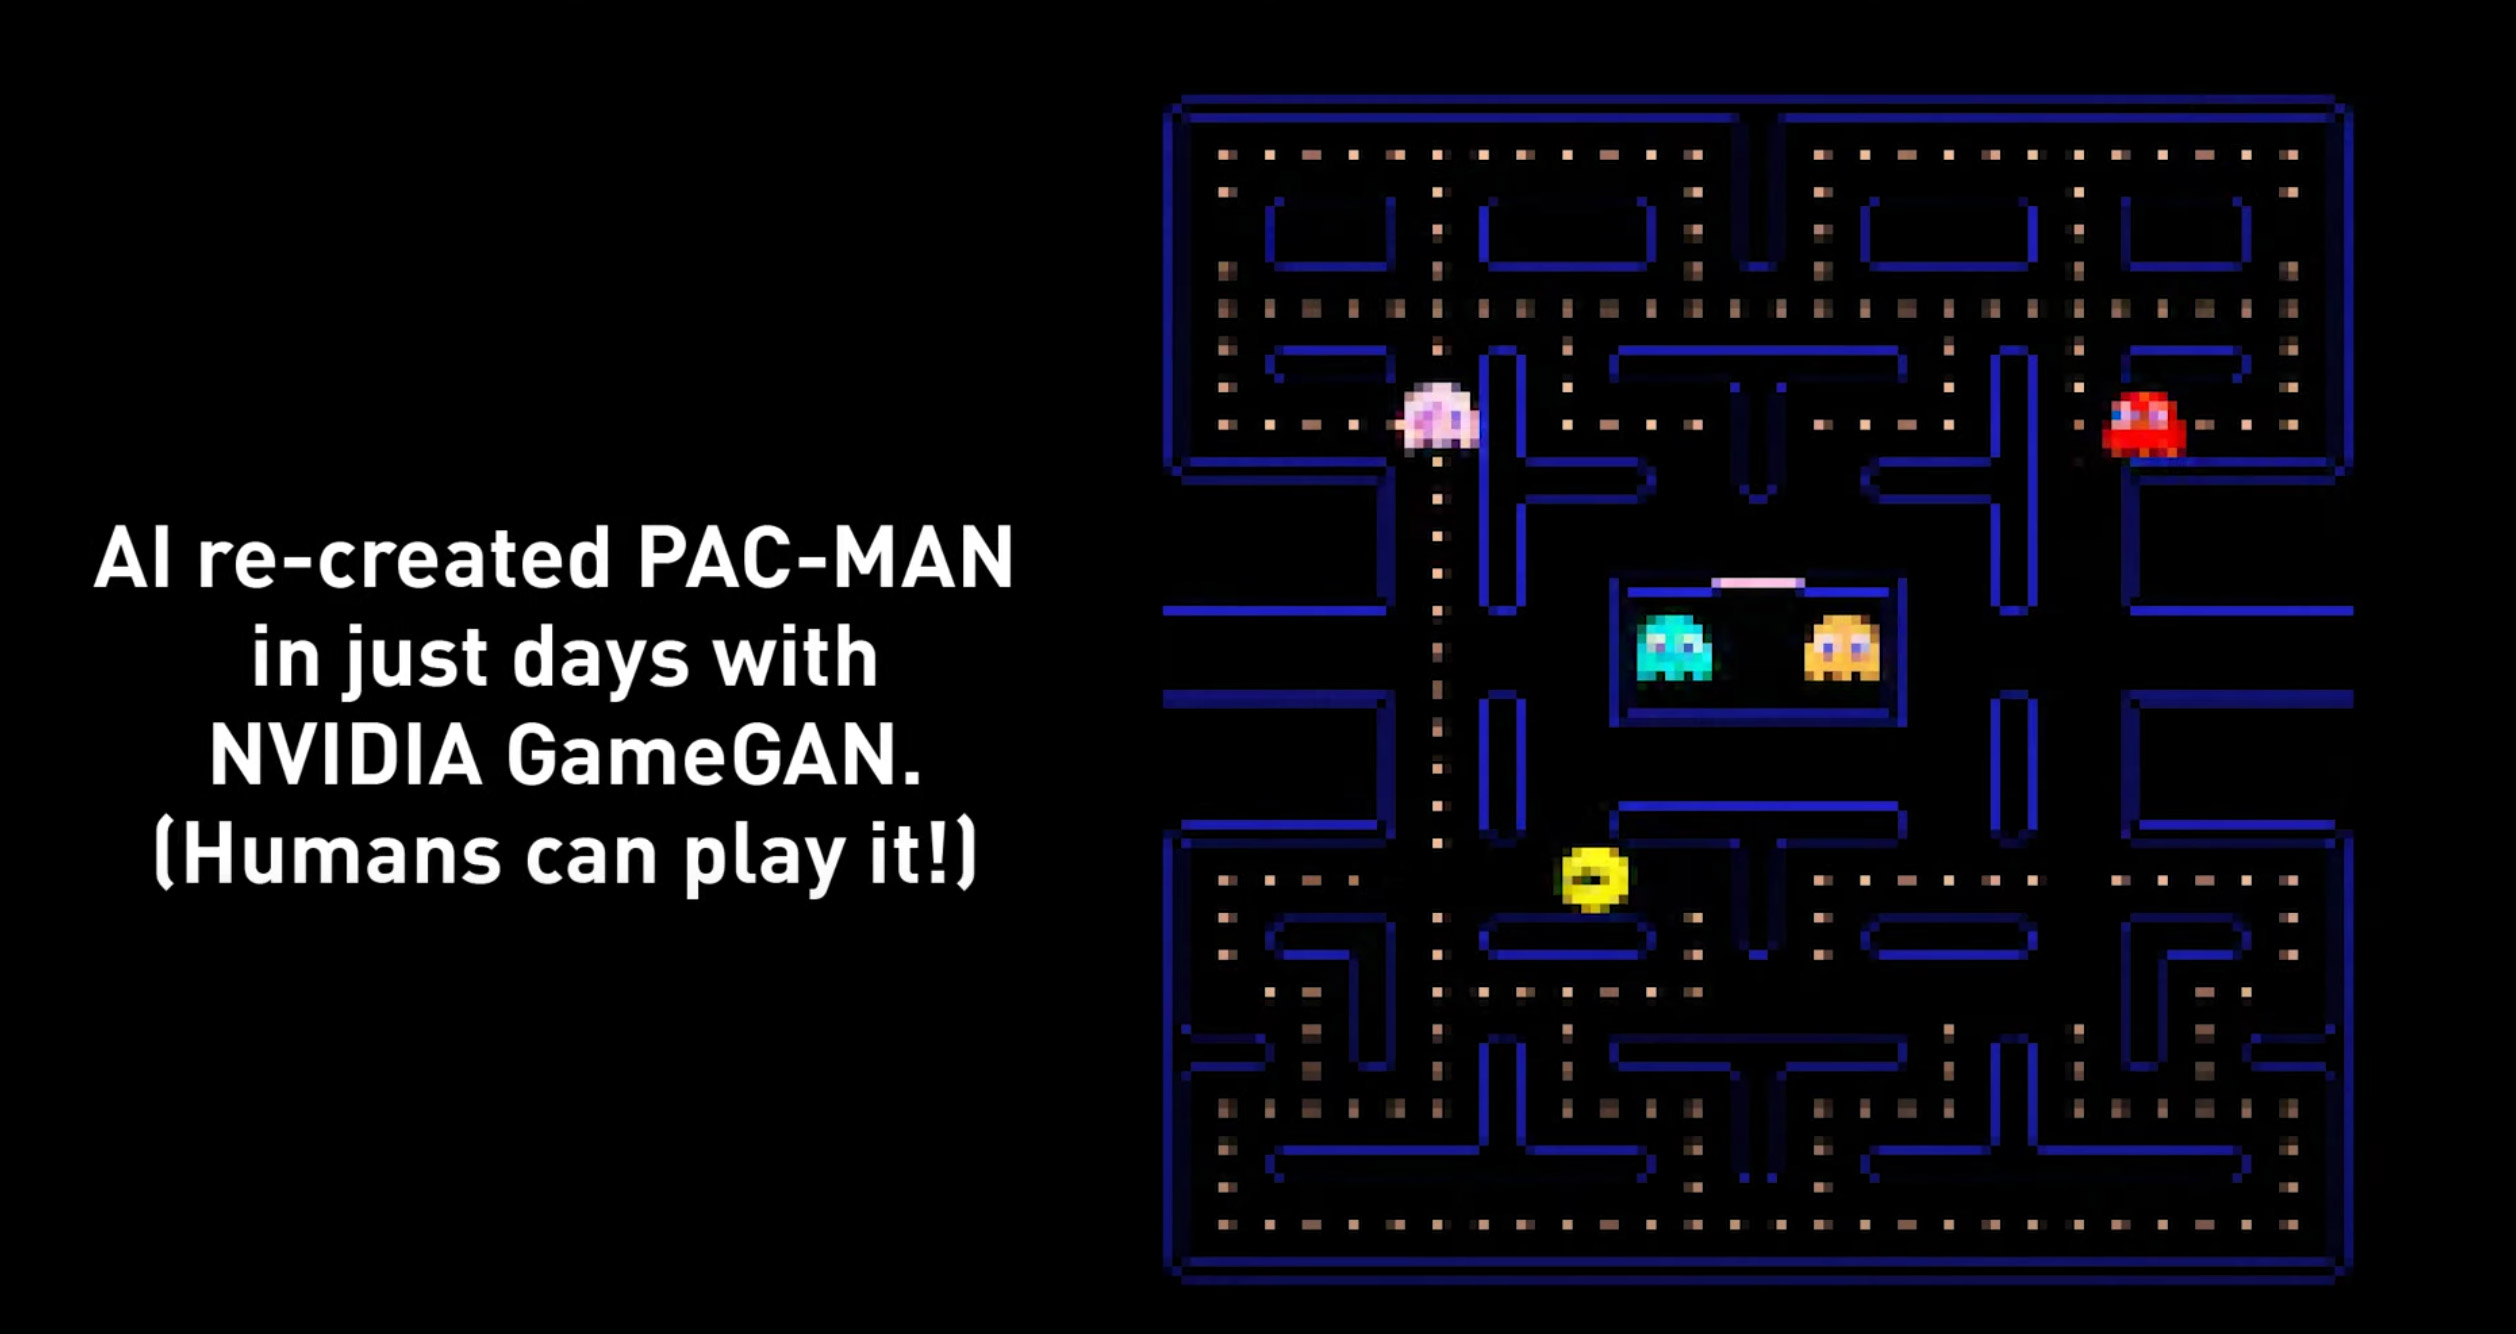 NVIDIA Artificial Intelligence Pac-Man